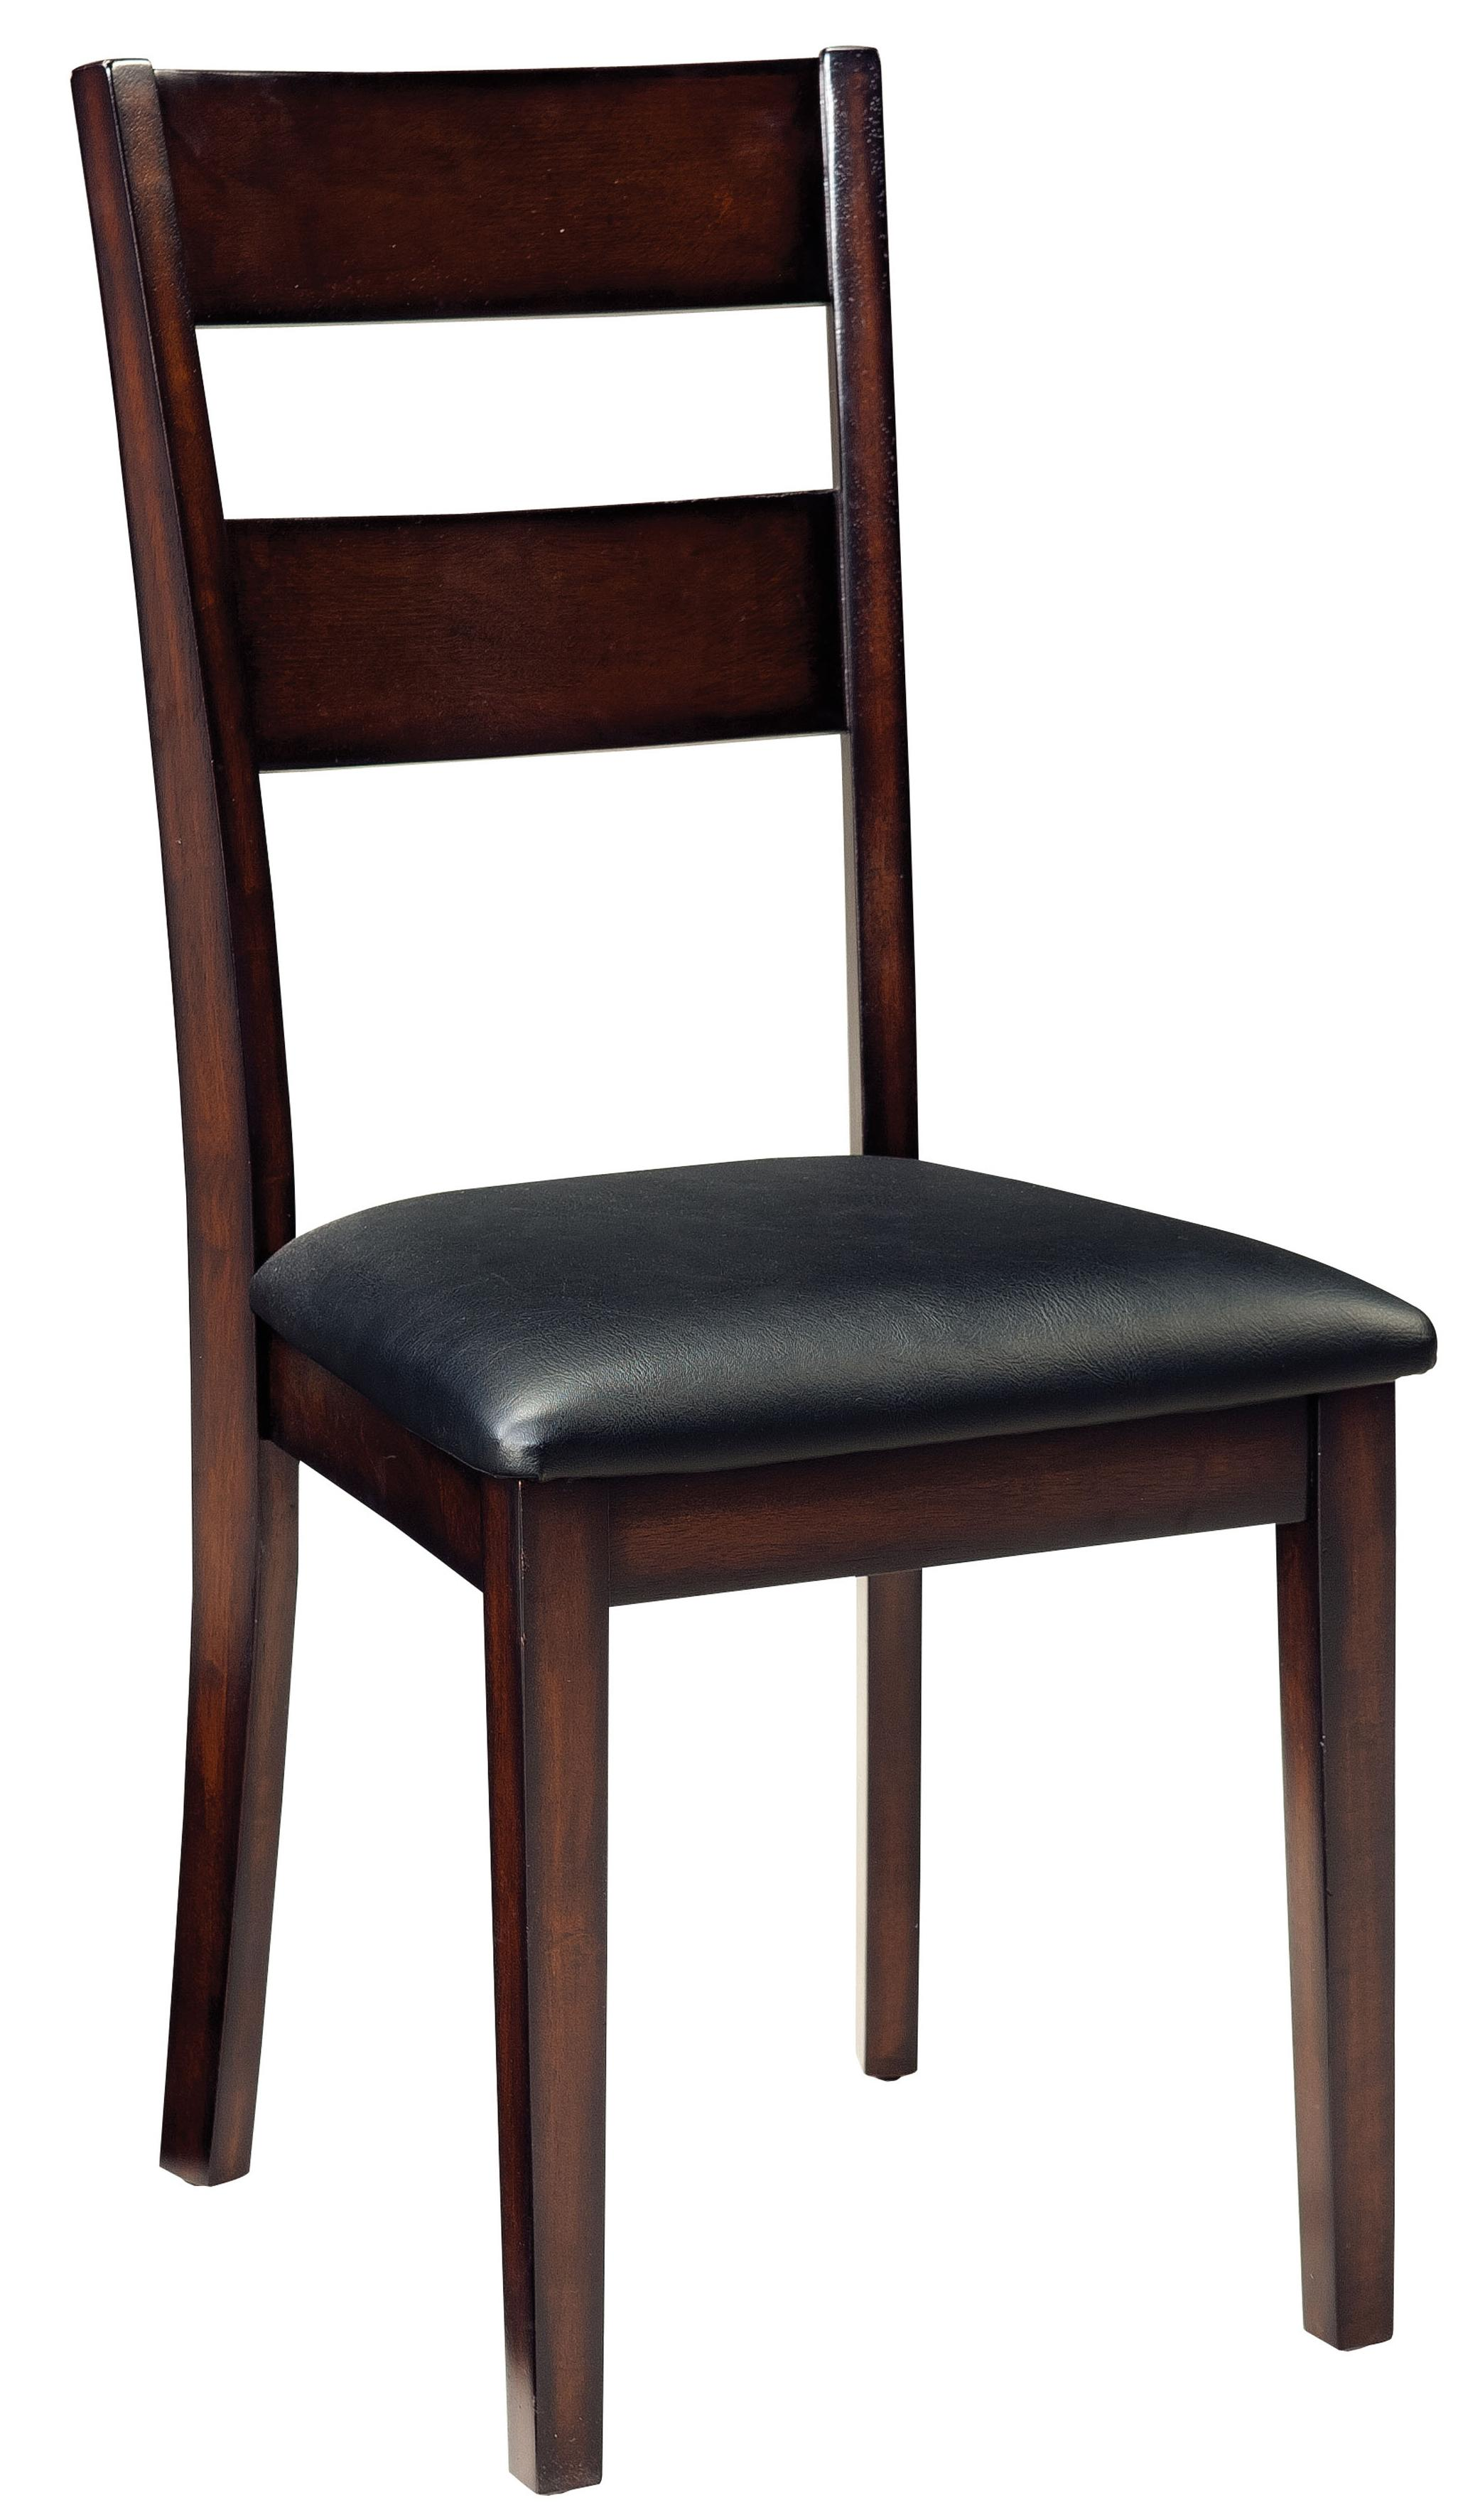 5 piece round table dining side chairs set by standard for Side chairs for dining table